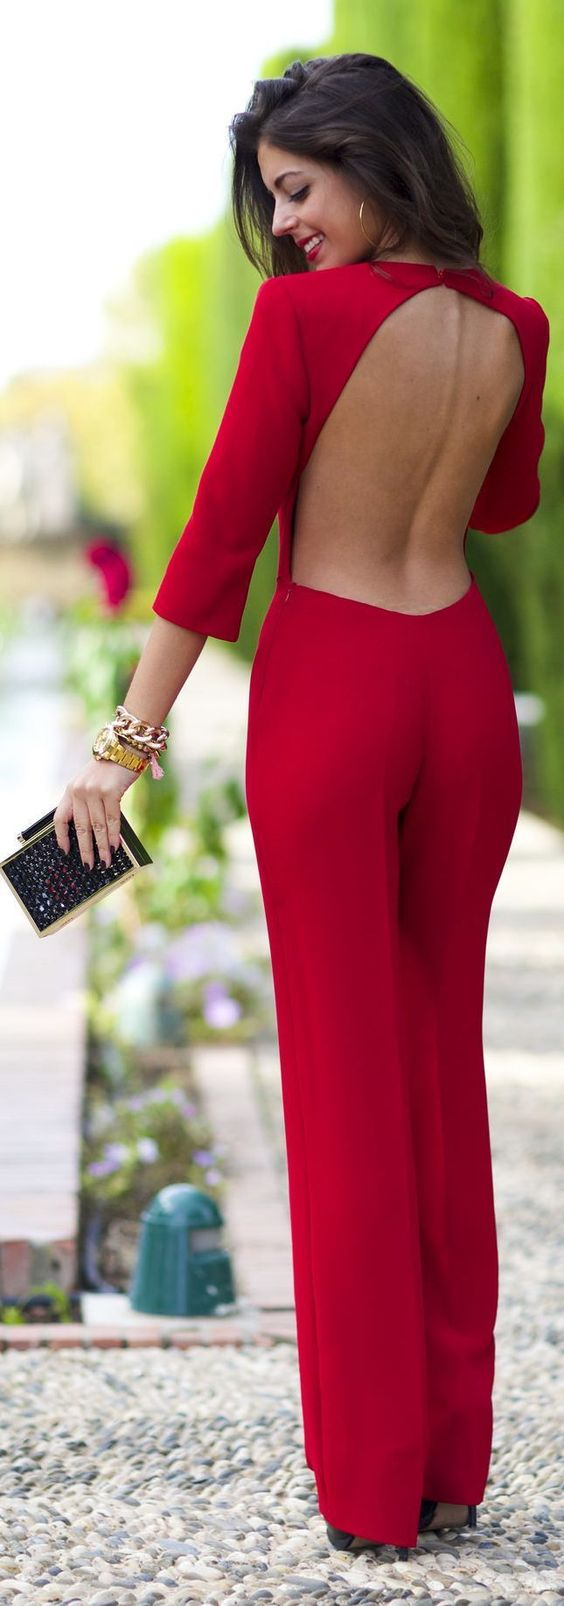 25 Best Christmas Party Outfit Ideas for Women